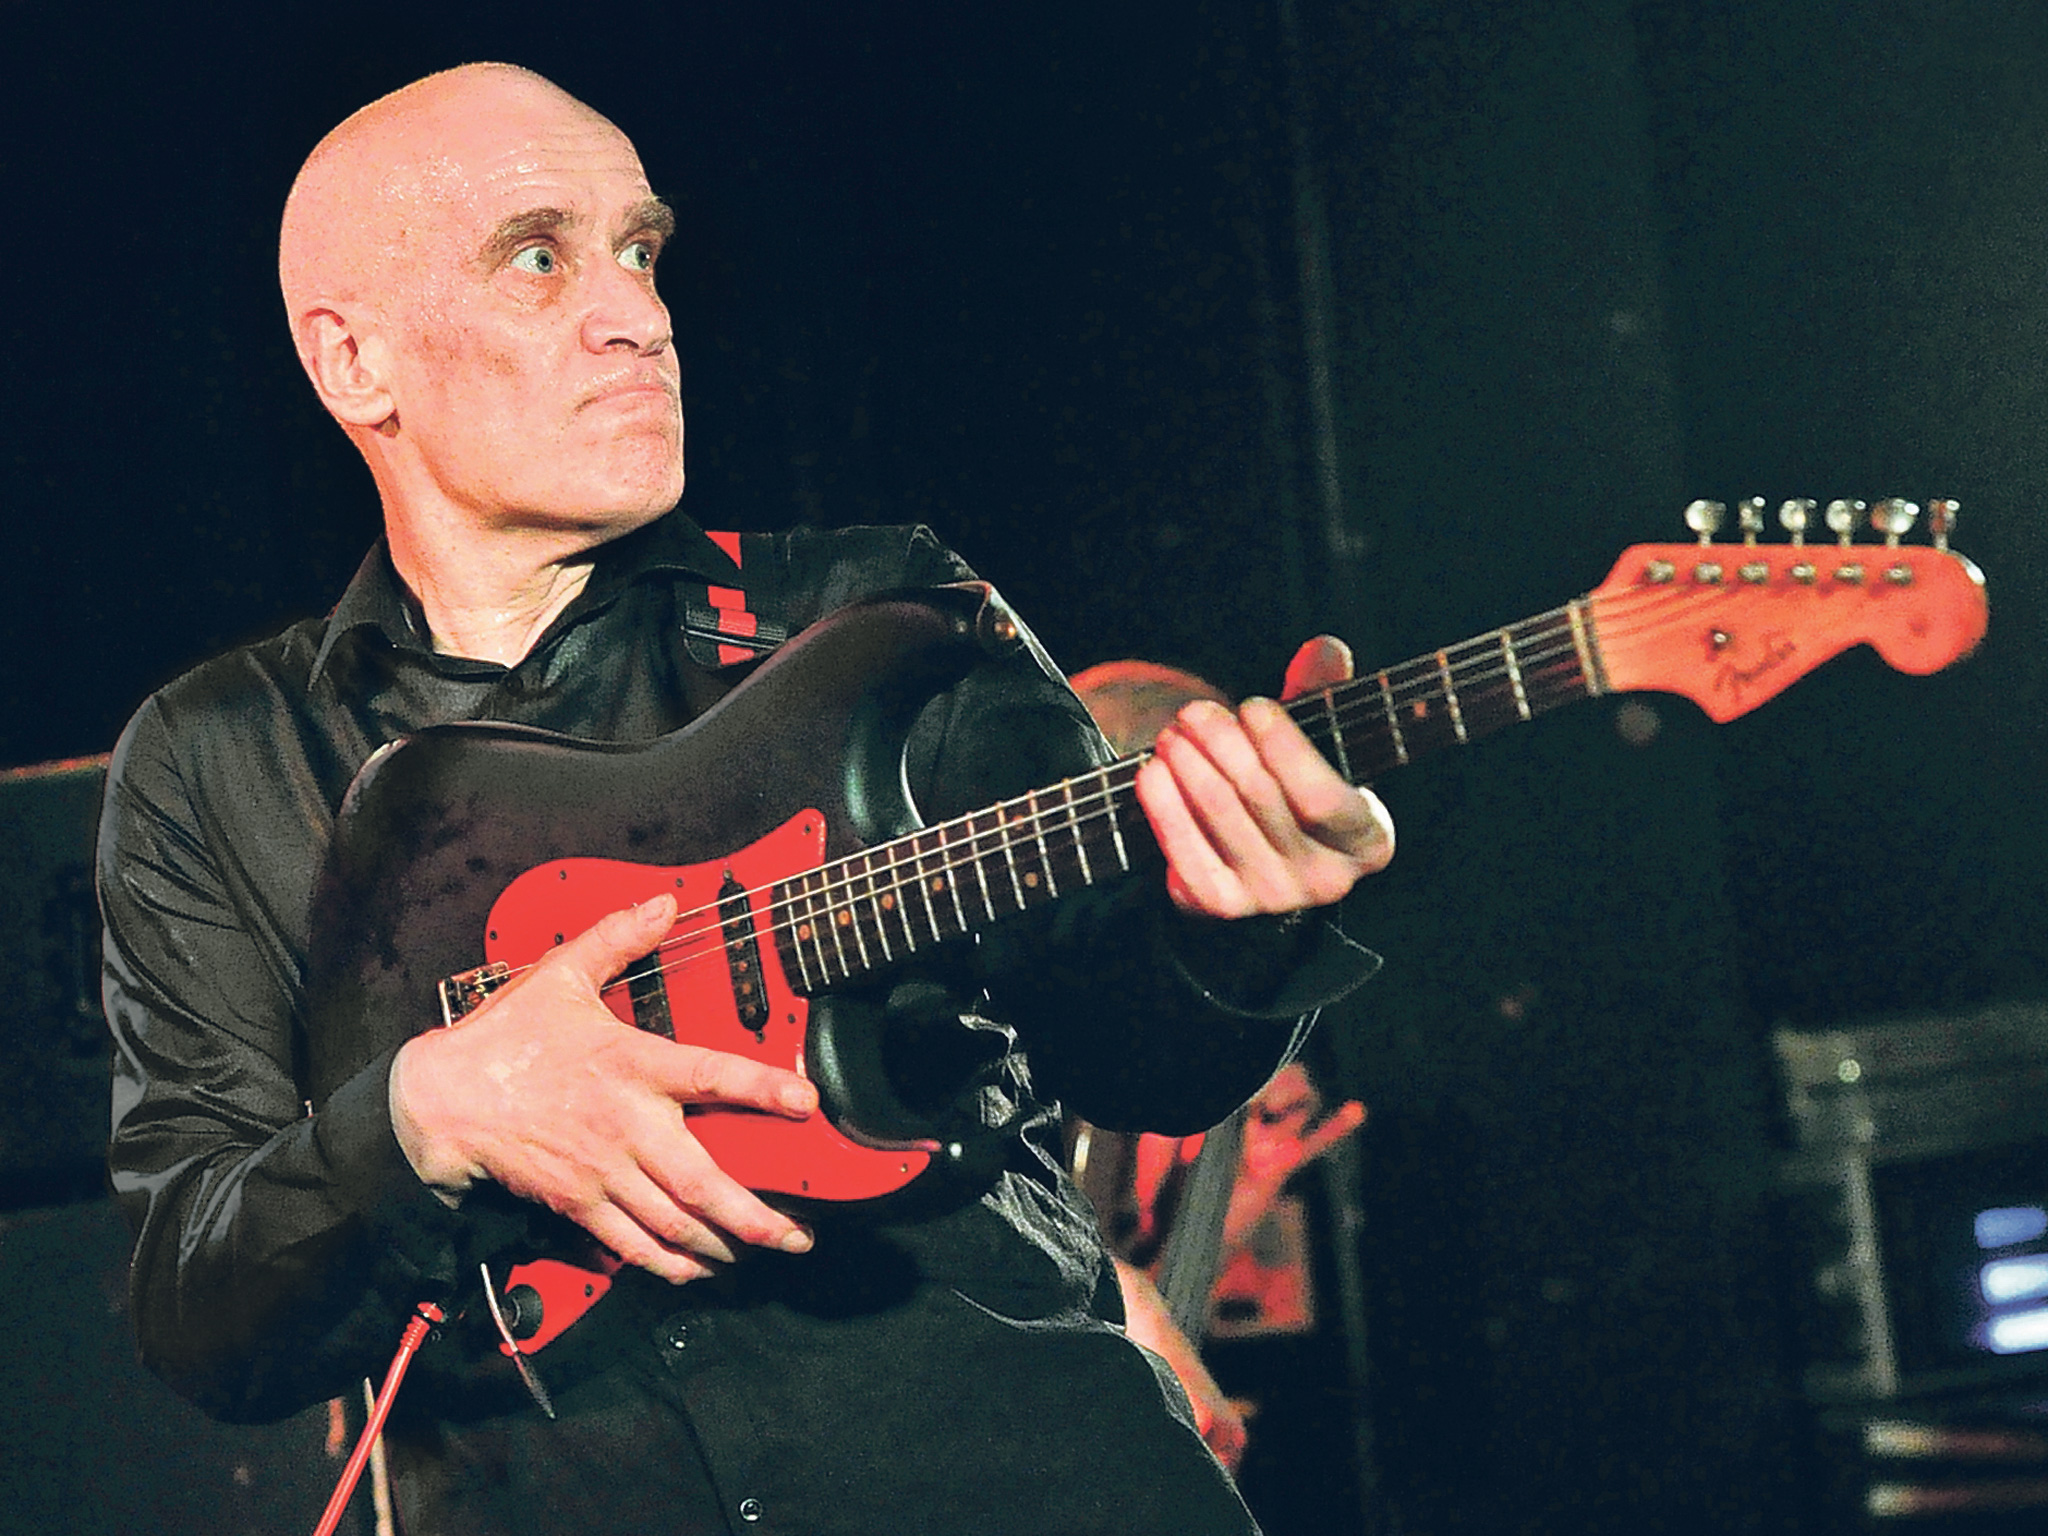 Wilko Johnson. The guitar has been his weapon, but it has also helped save him.